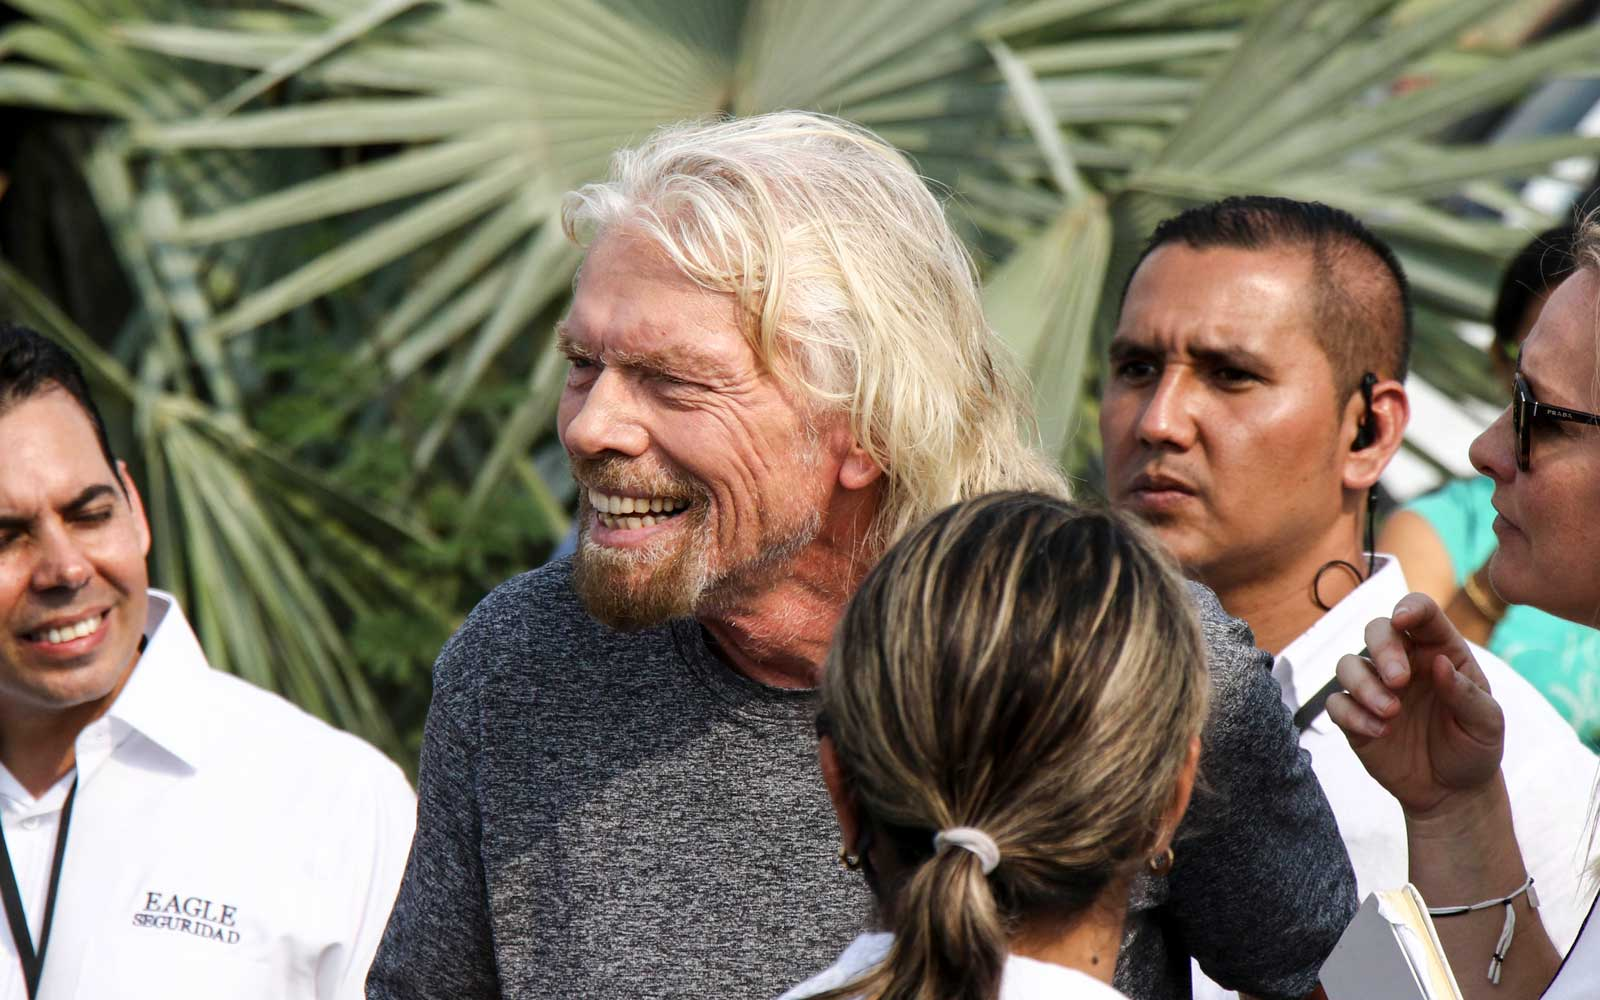 How to Ask Your Boss for More Vacation Days, According to Richard Branson